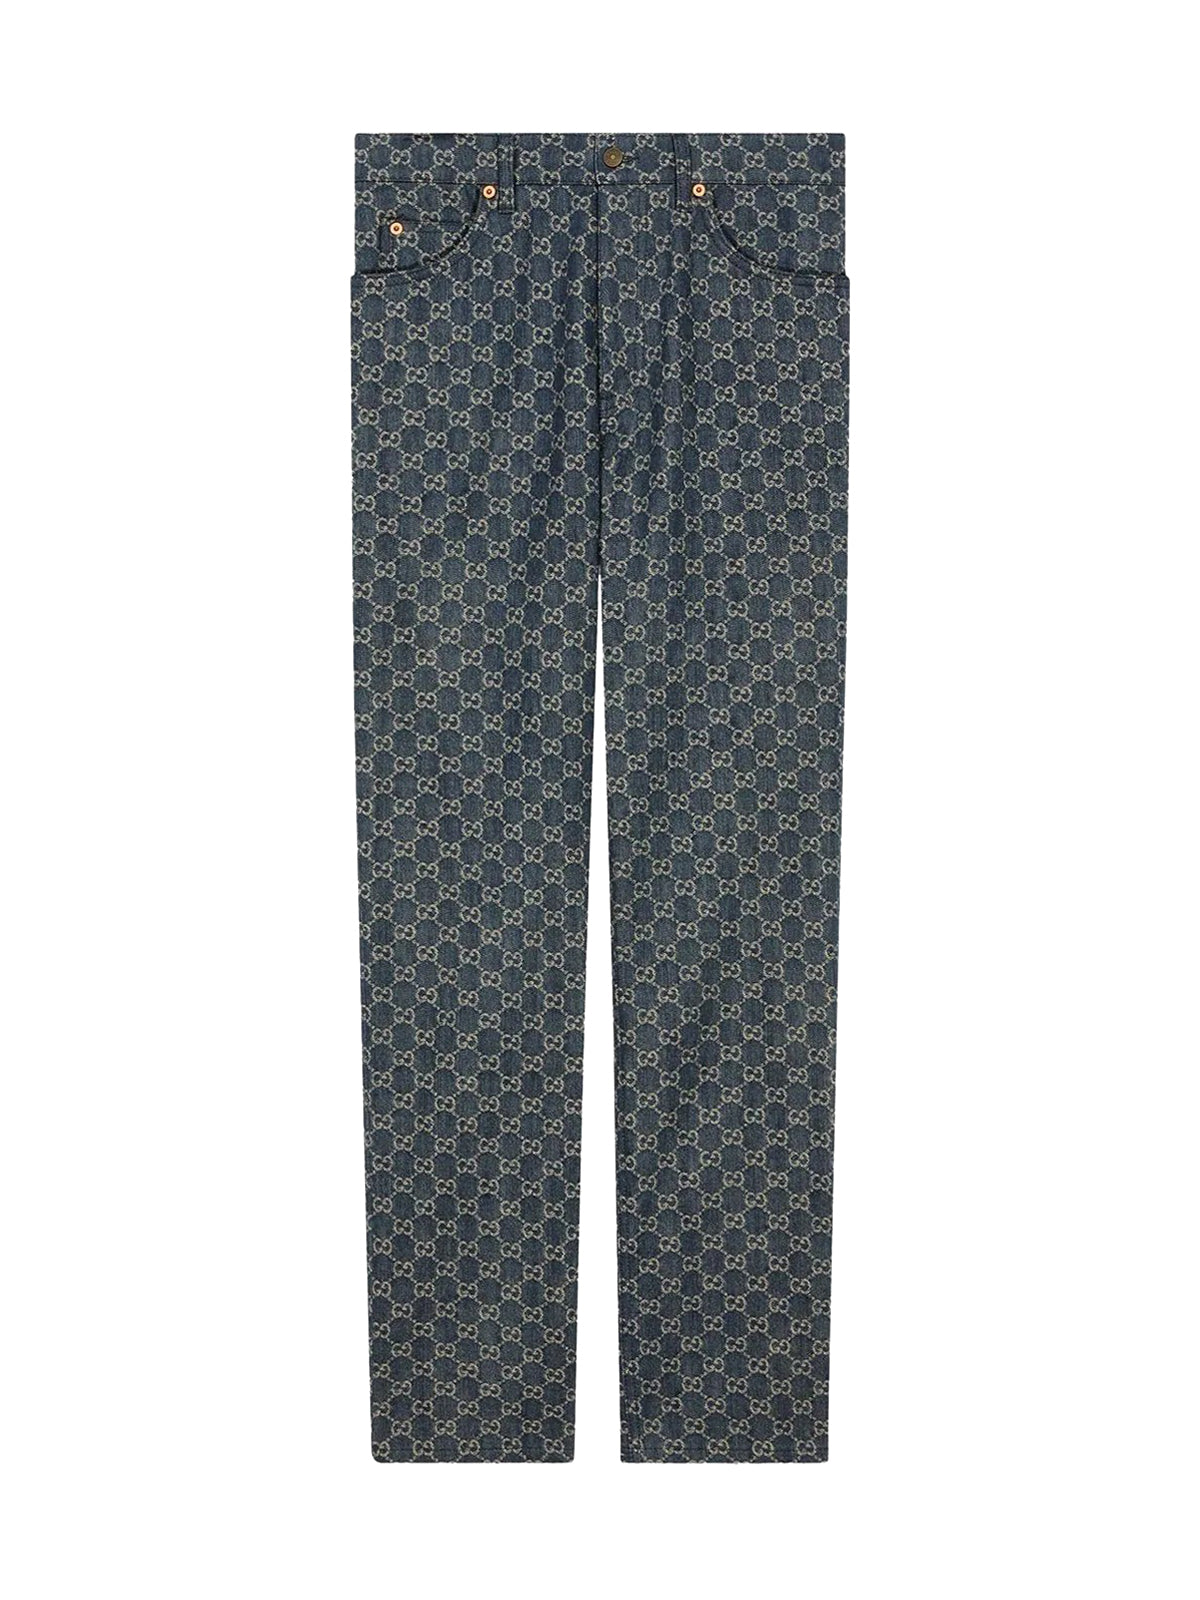 GG denim trousers